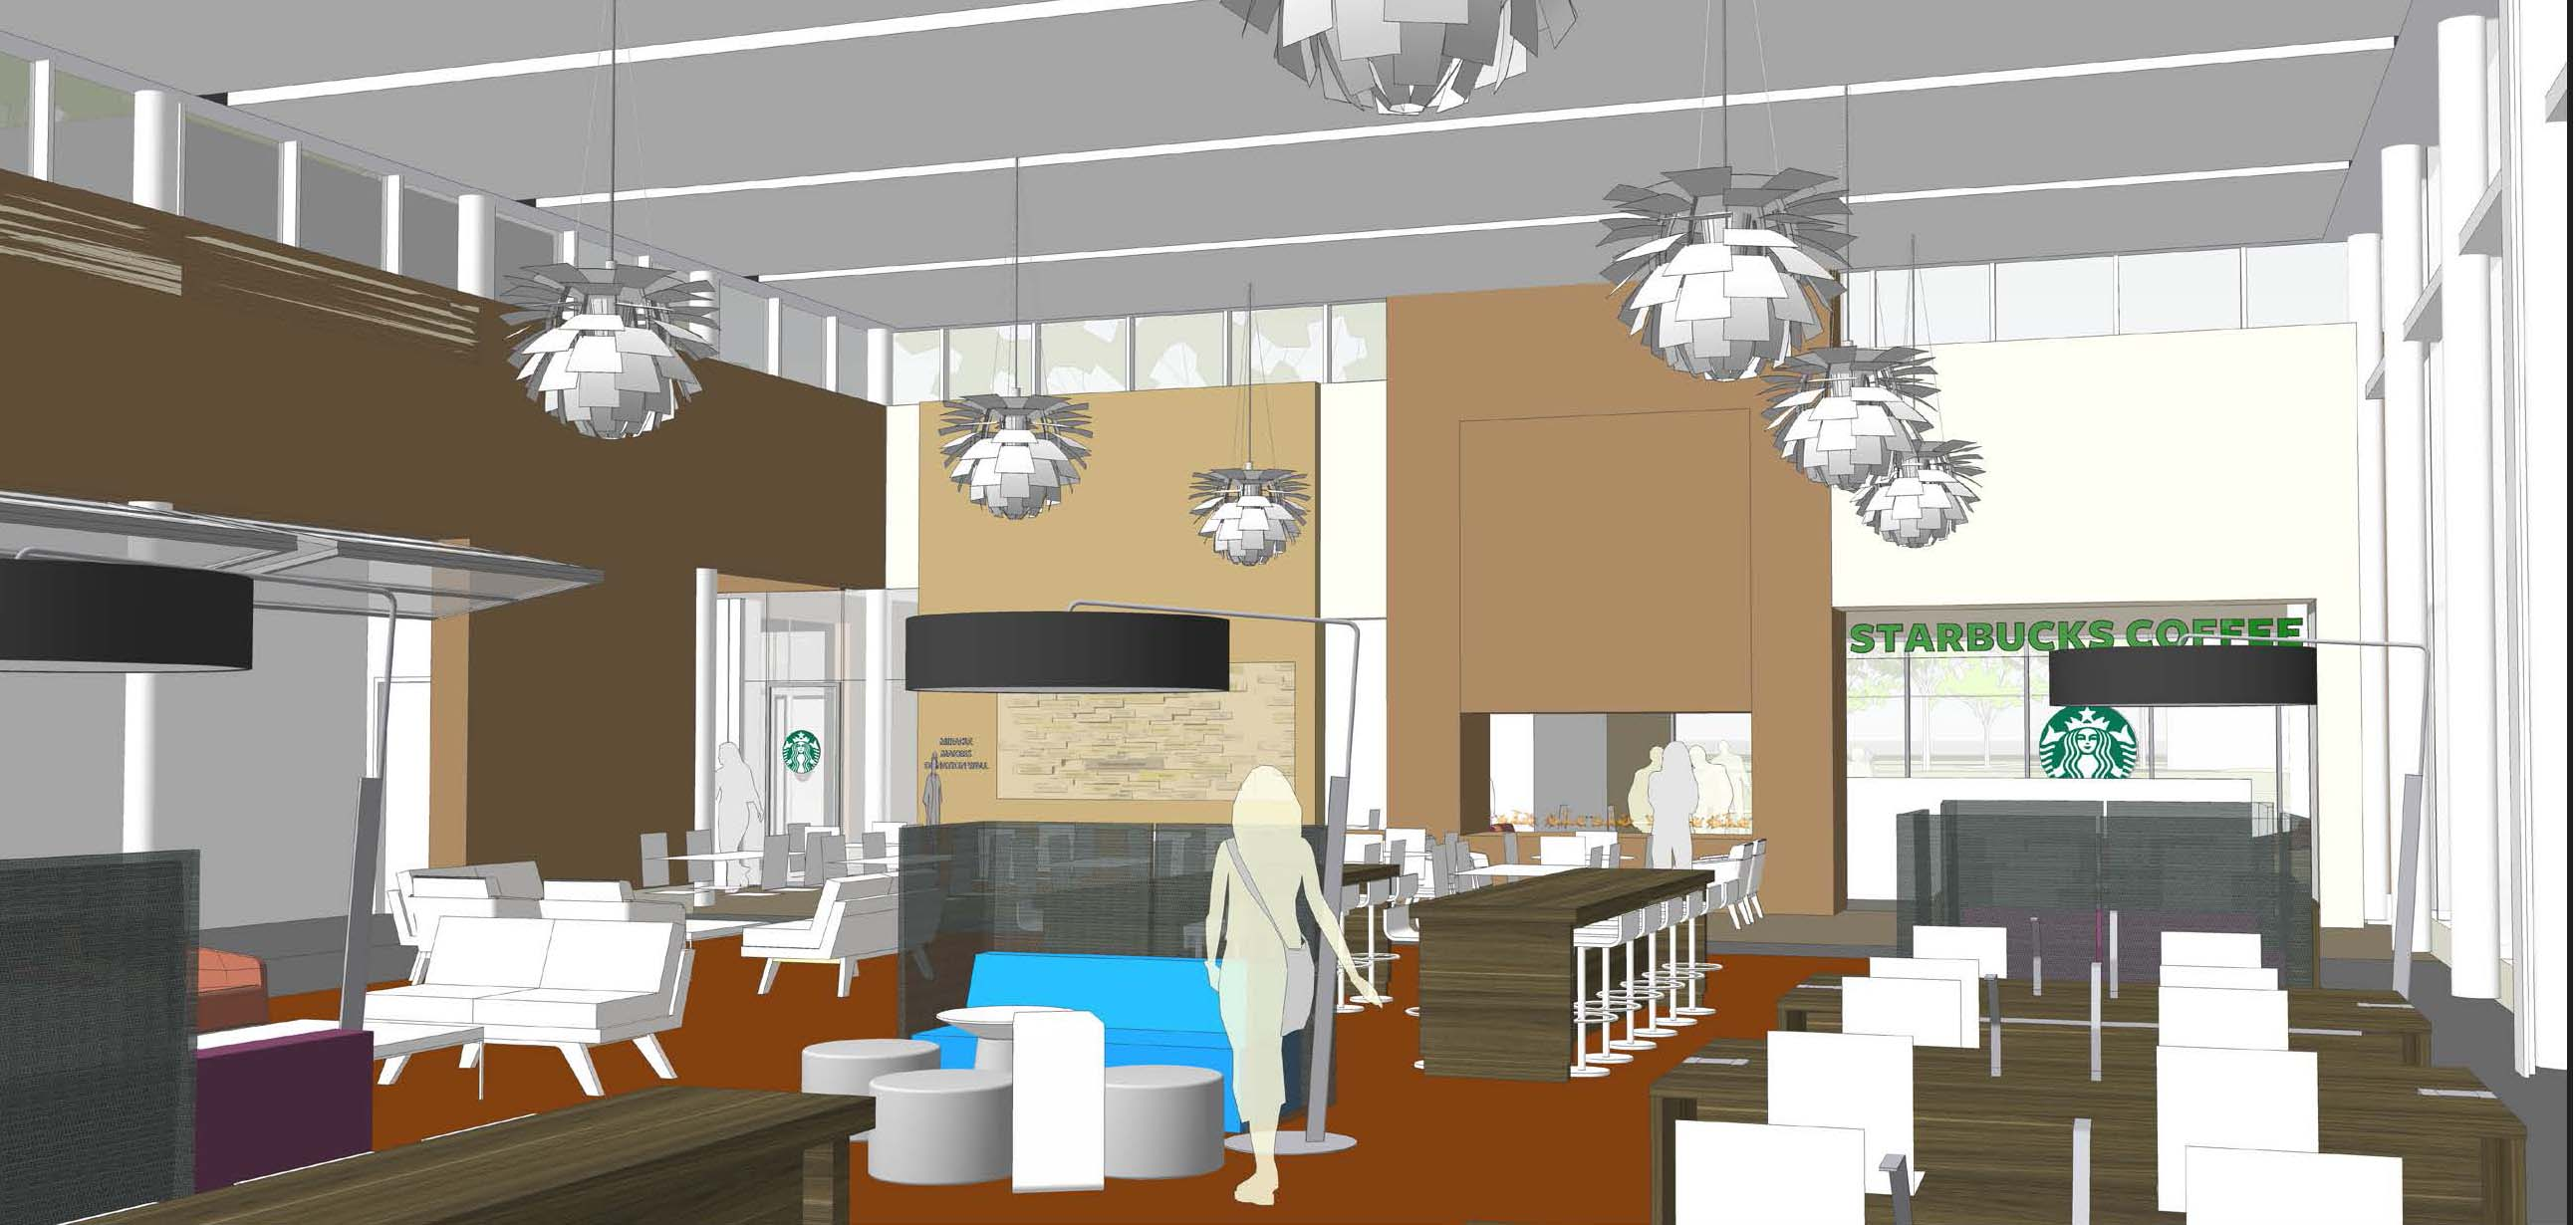 <p>Wilhelm Construction Builds Innovative New Space For Marian University Students</p>